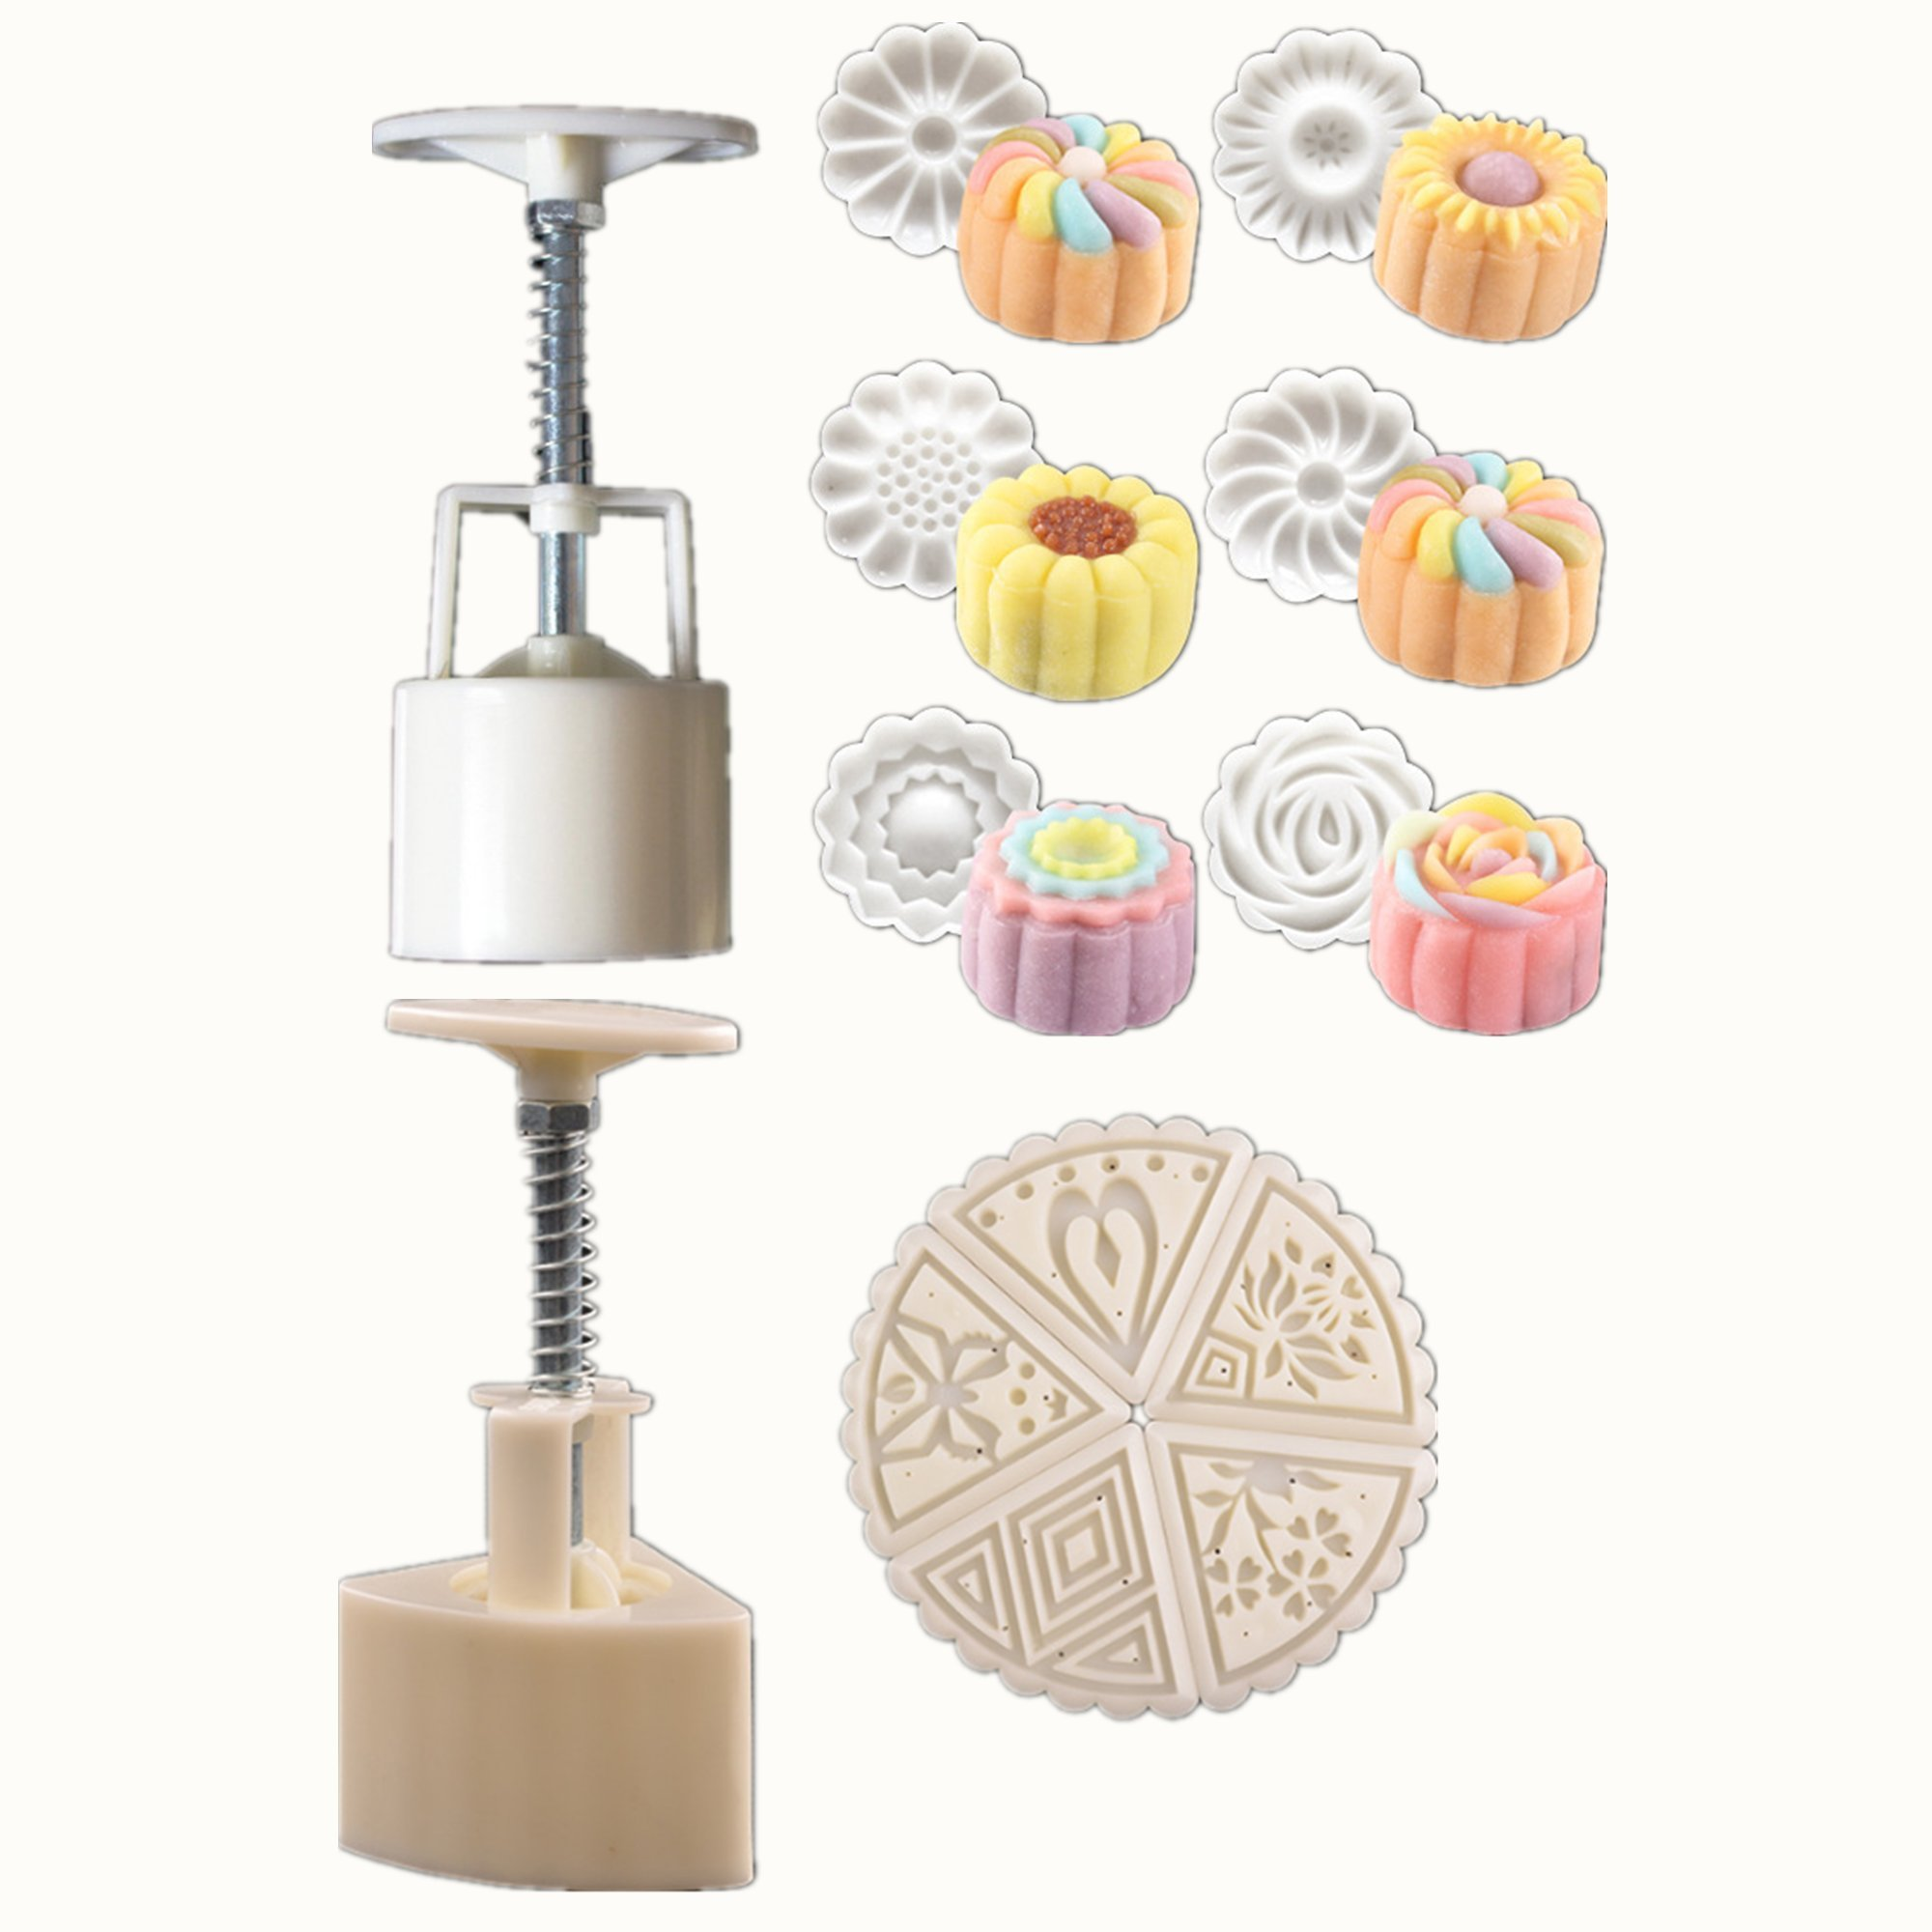 Mooncake Mold Press-2 set cake mold press 50g with 11 Stamps Flower and Triangle Shape Decoration Tools for Baking DIY Cookie (White)